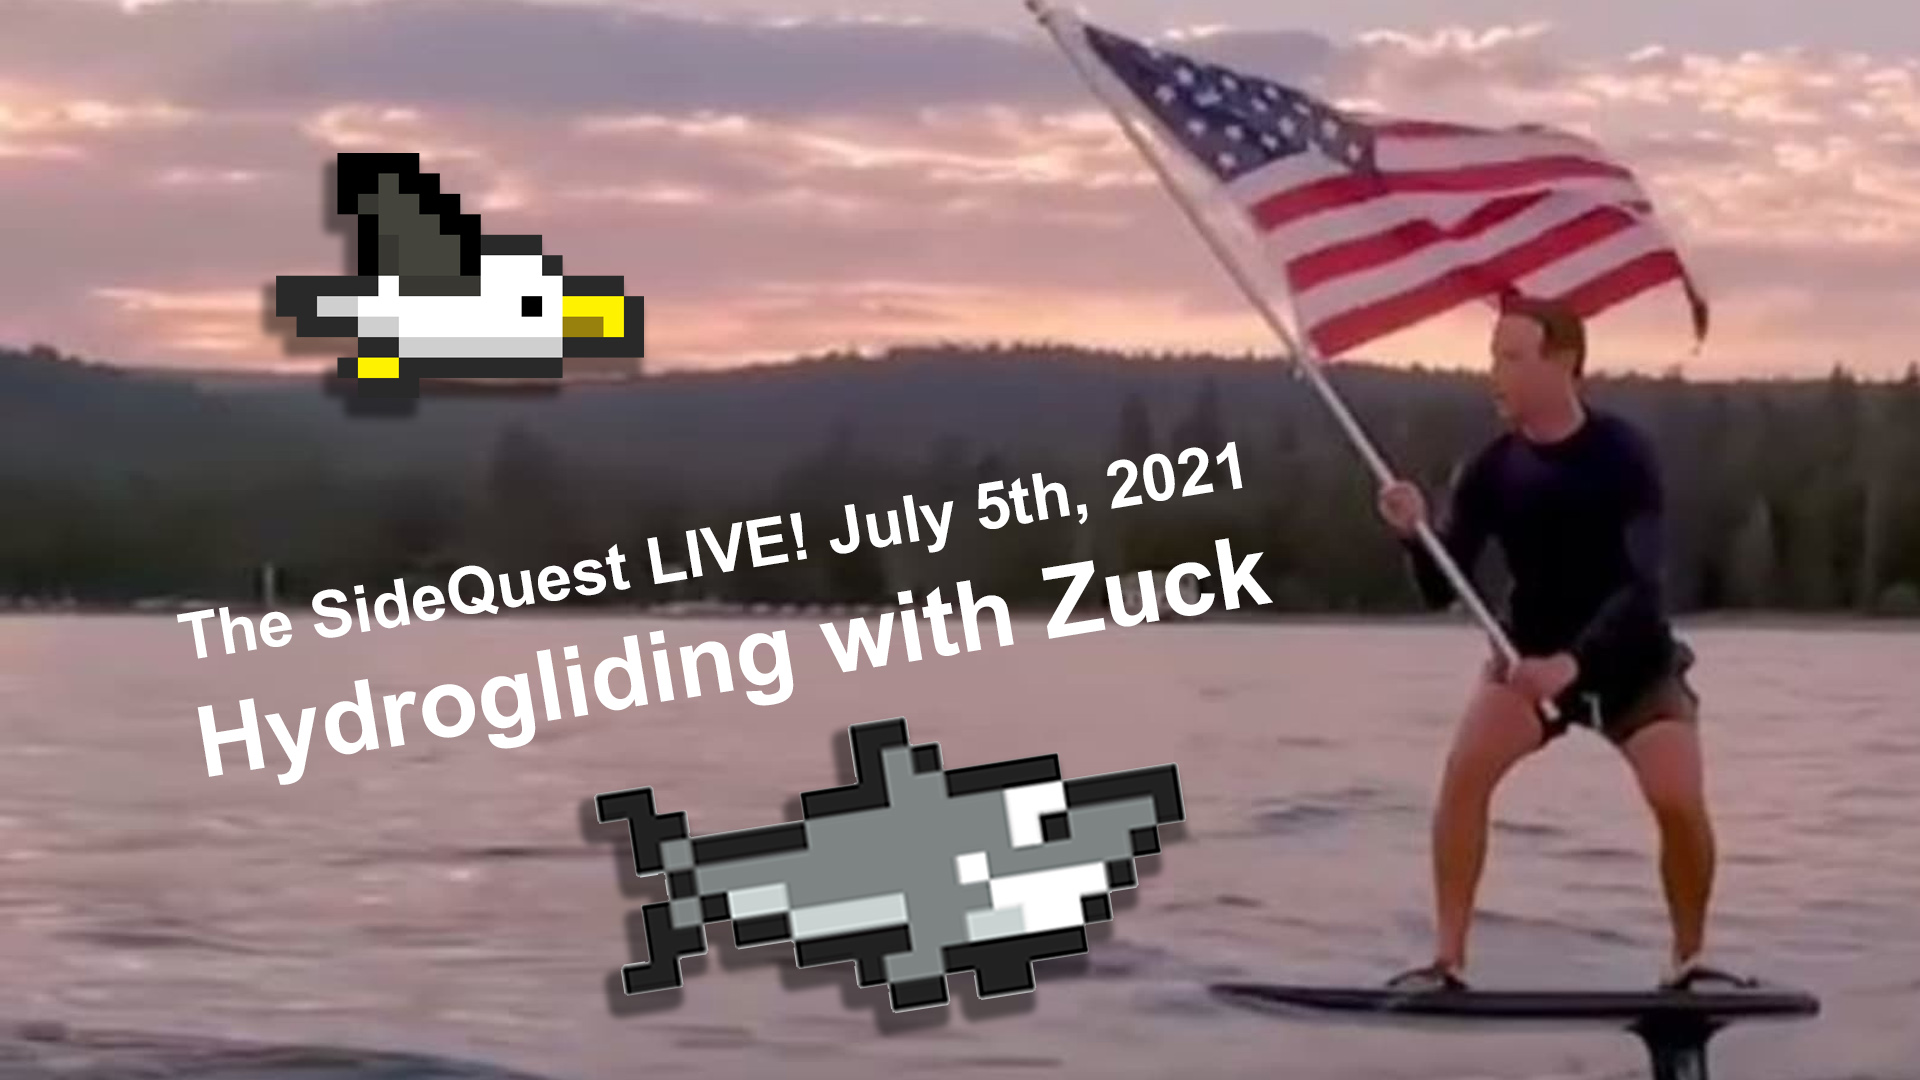 The SideQuest LIVE! July 5th, 2021: Hydrogliding with Zuck